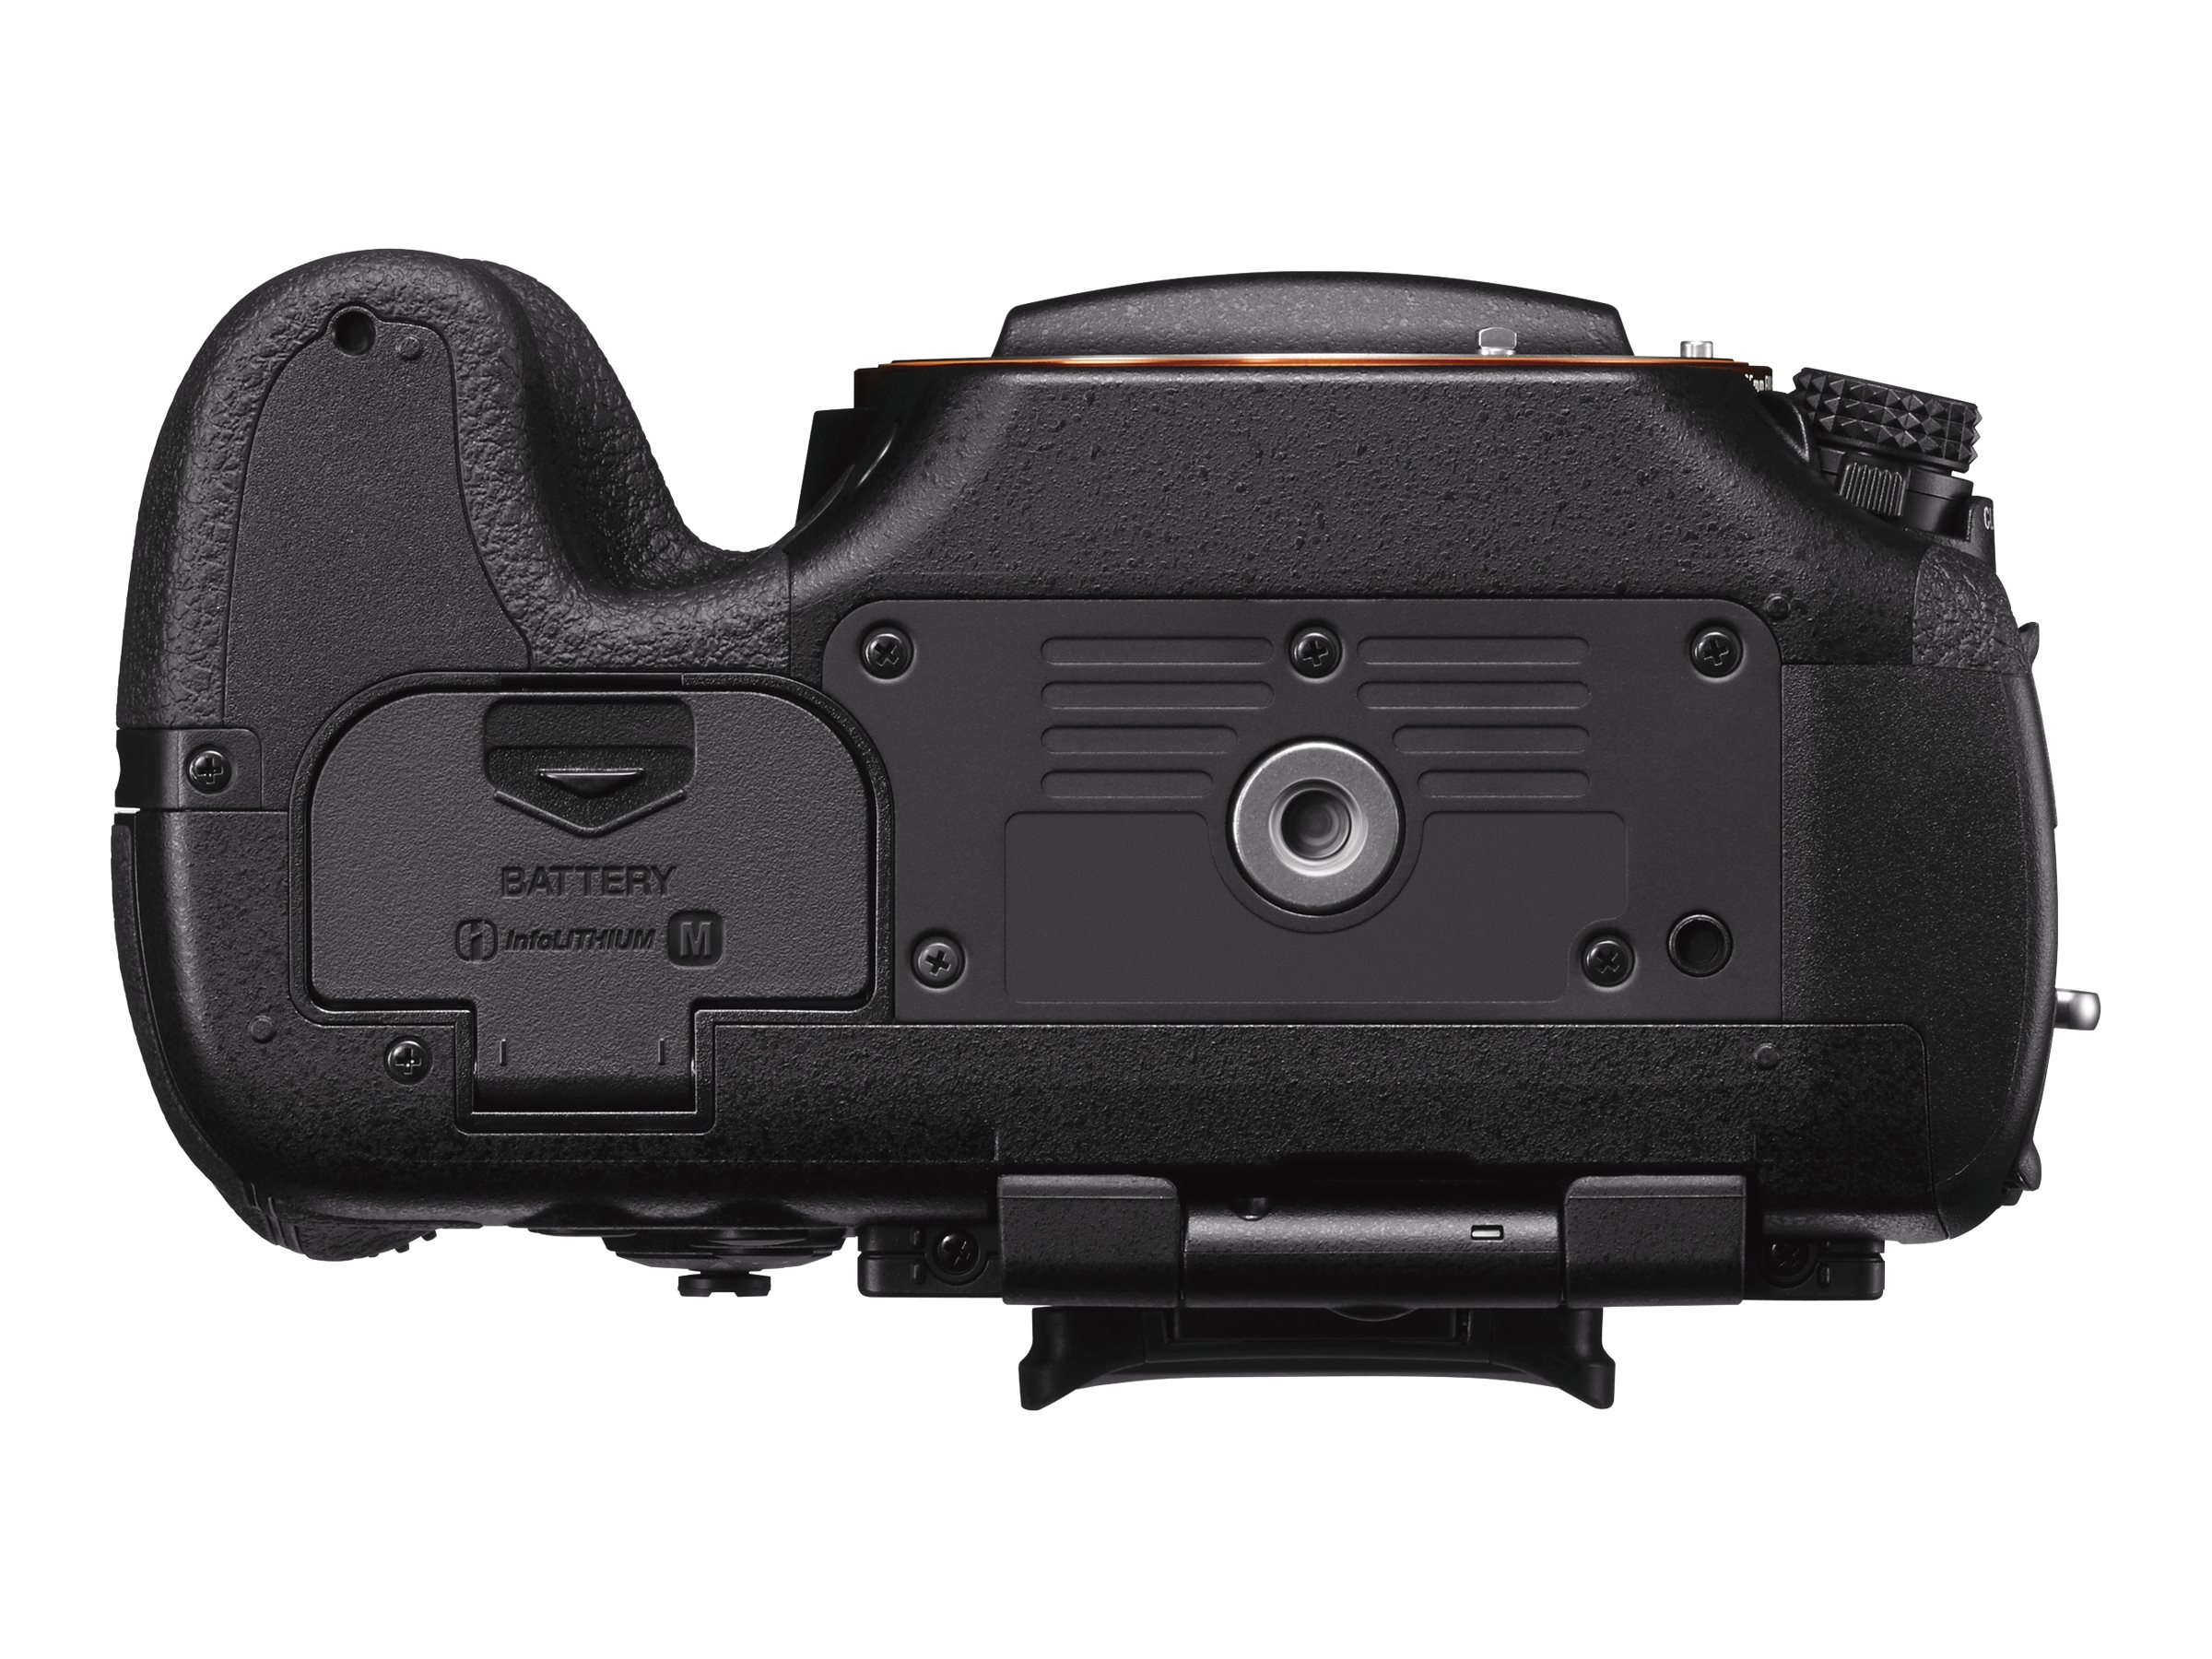 Sony Alpha a99 II DSLR Camera (Body Only), ILCA-99M2